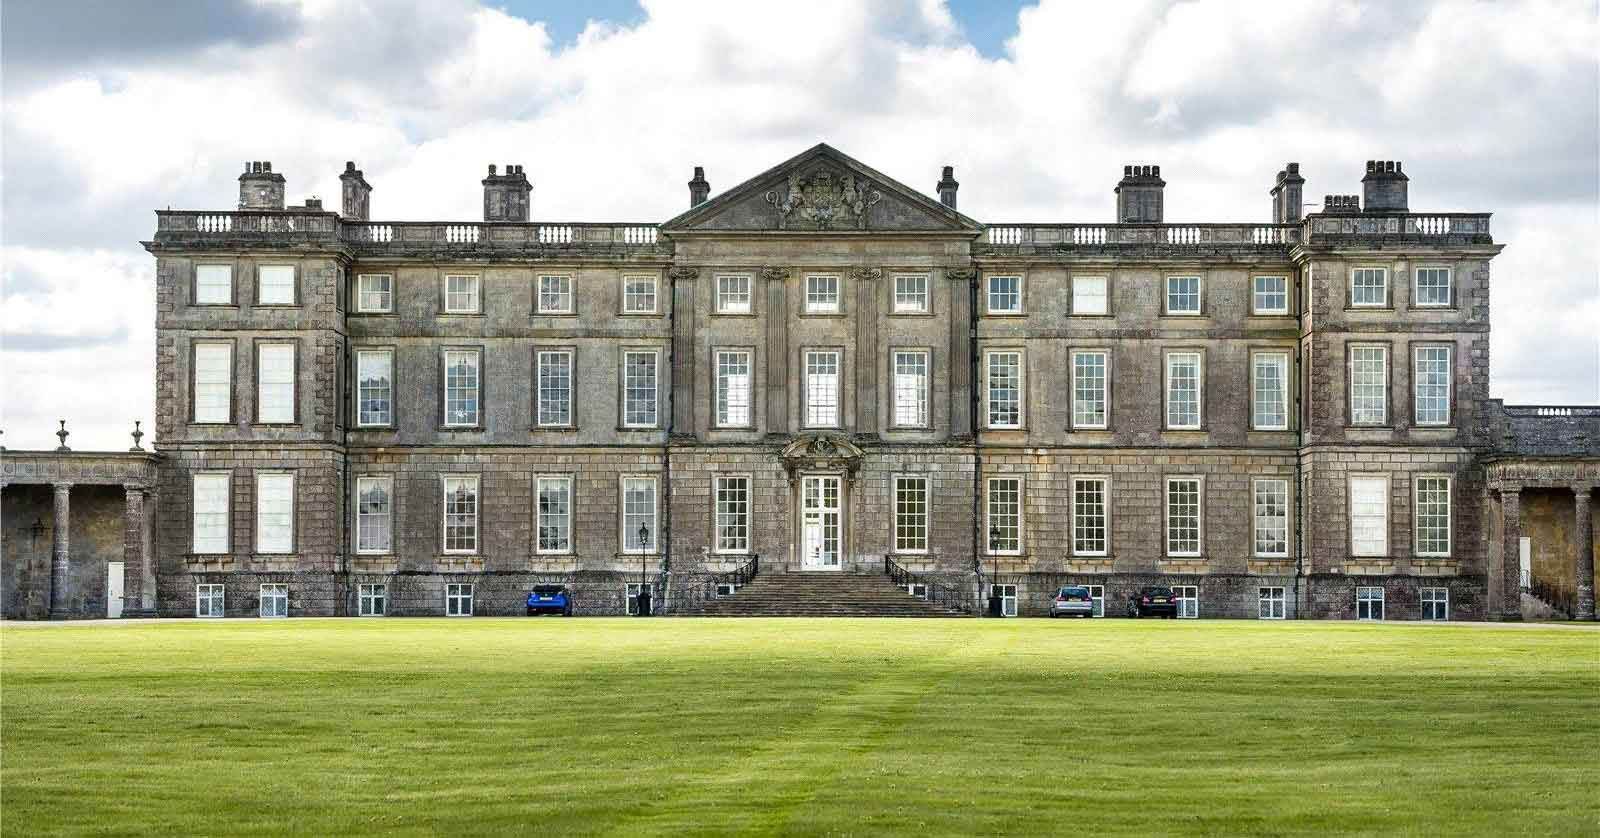 Three West Court forms part of Burley on the Hill, a Grade I listed Palladian mansion built in the 1690s by the 2nd Earl of Nottingham and converted in the mid-1990s by acclaimed British architect and conservationist Kit Martin CBE.